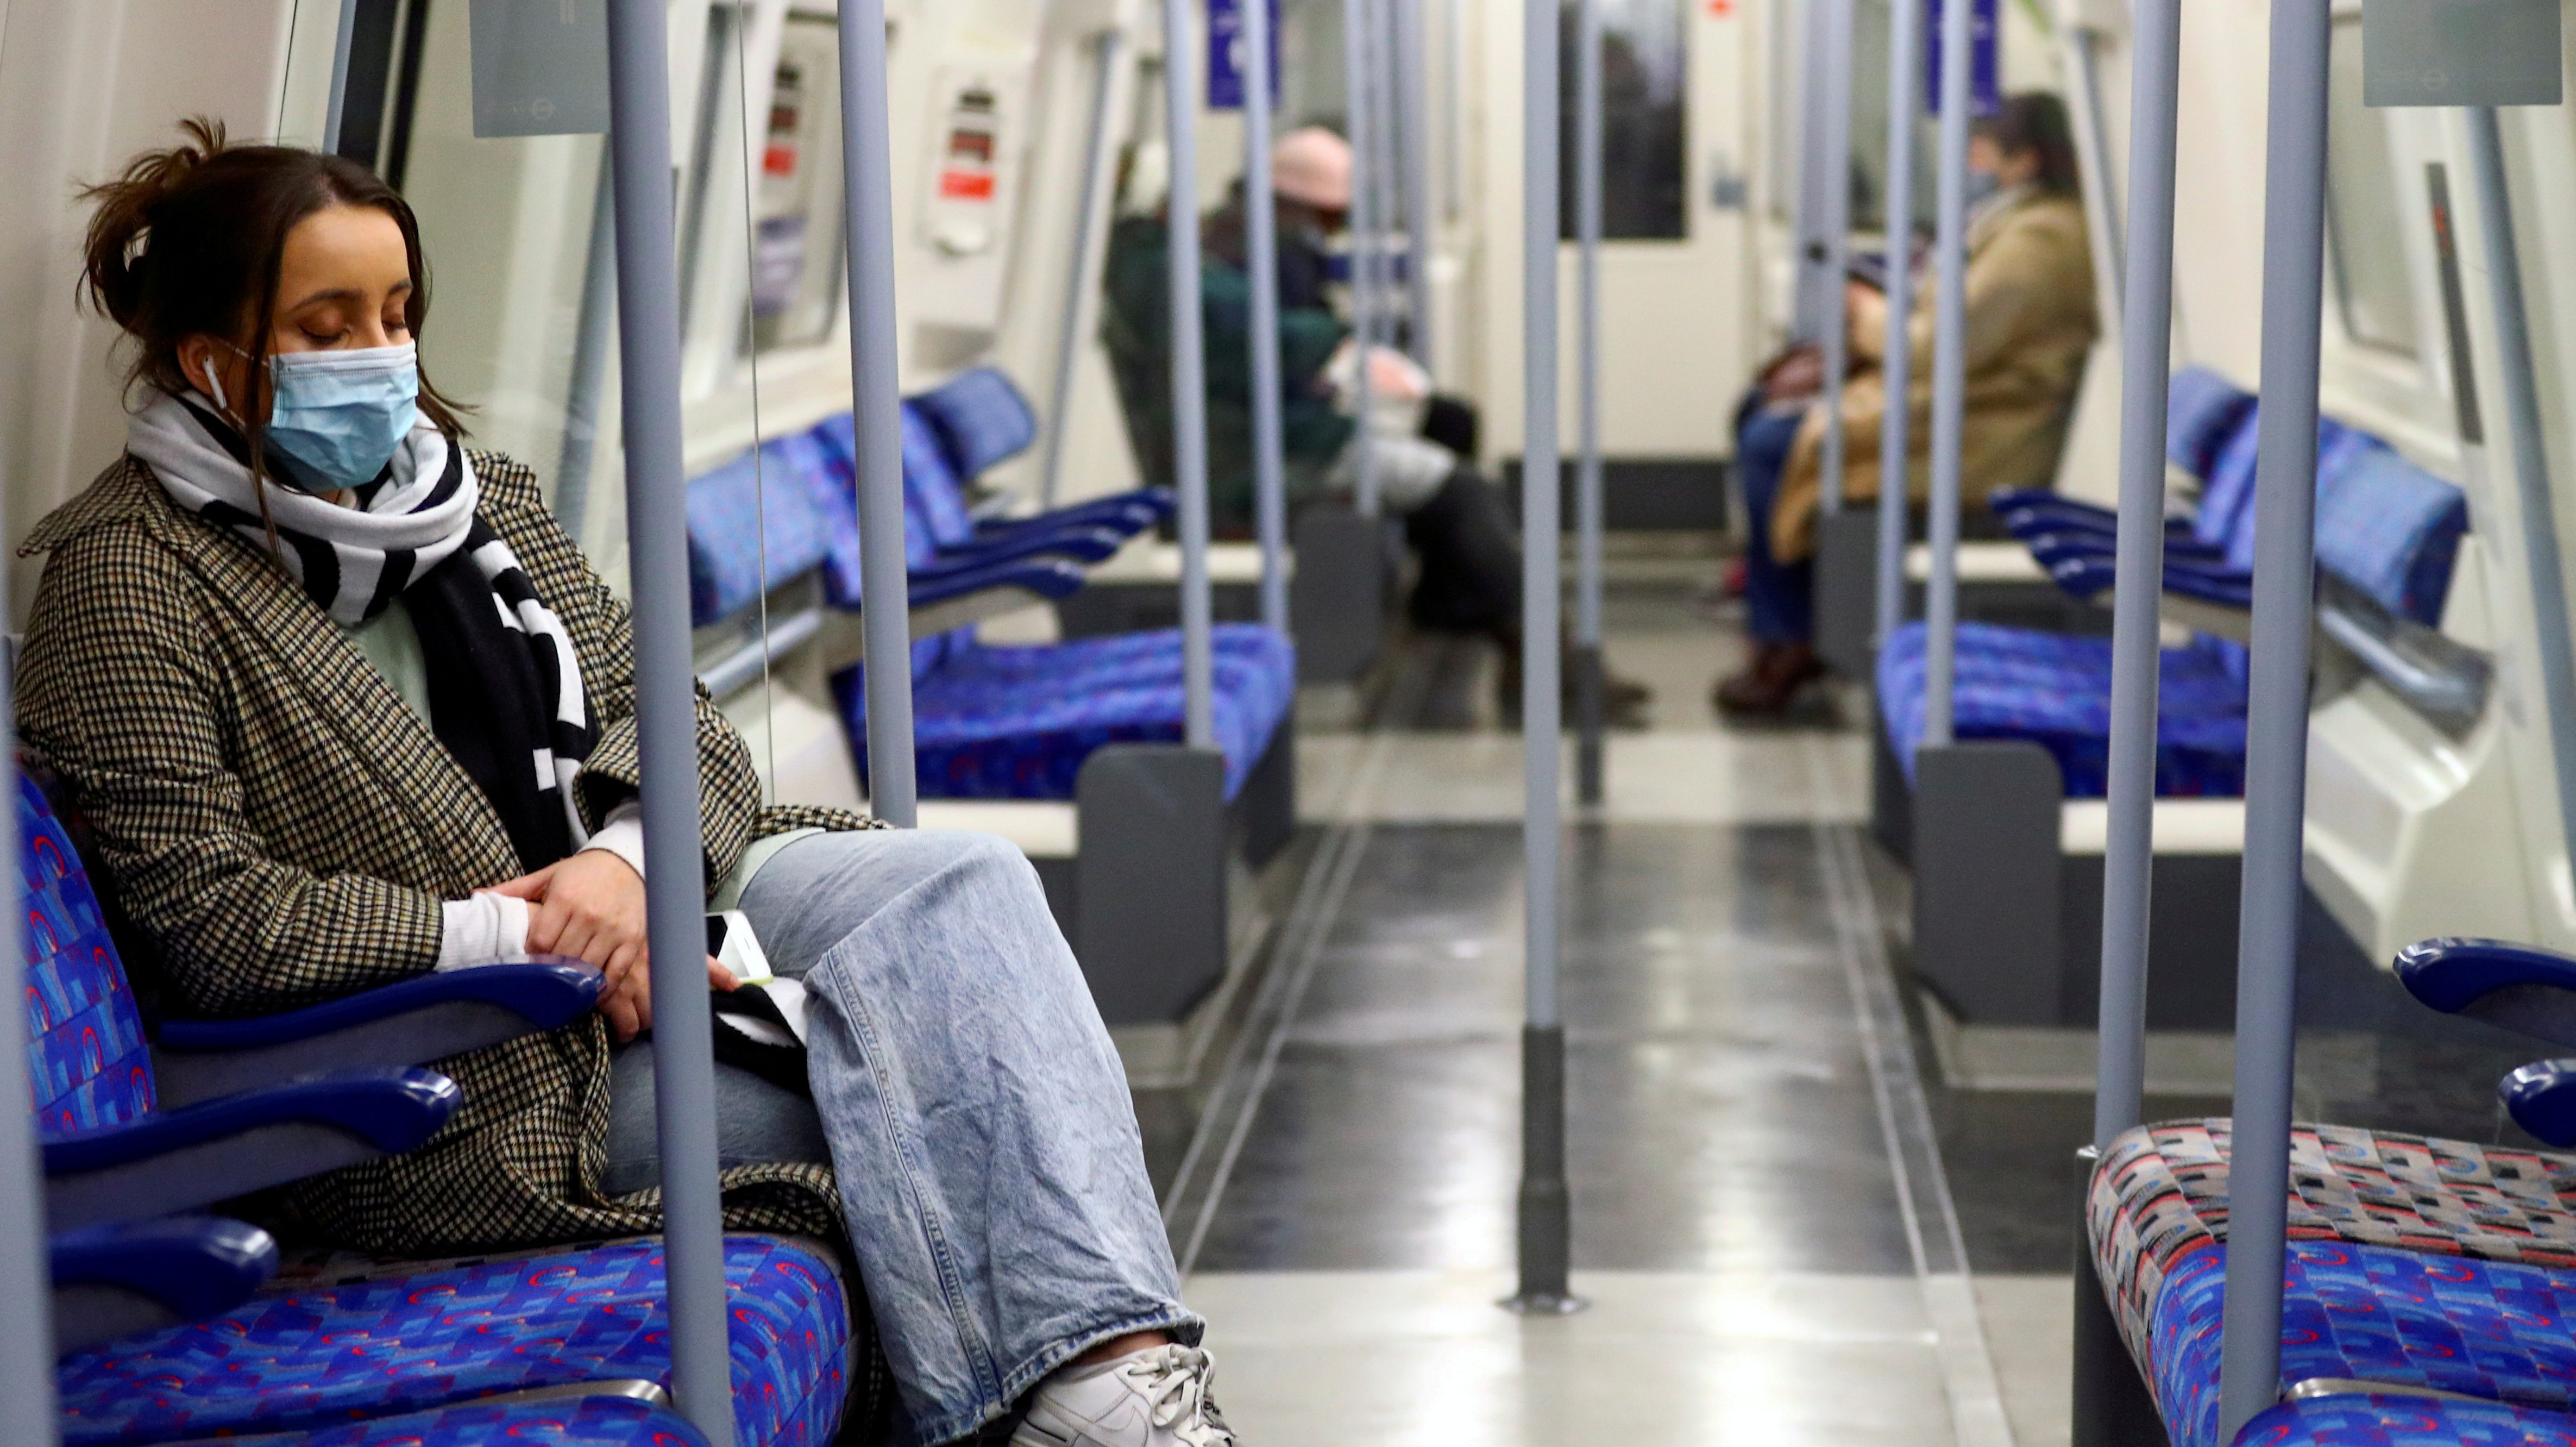 Commuters travel by underground inside an almost empty train, amid the coronavirus disease (COVID-19) outbreak, in London, Britain, January 5, 2021. REUTERS//File Photo